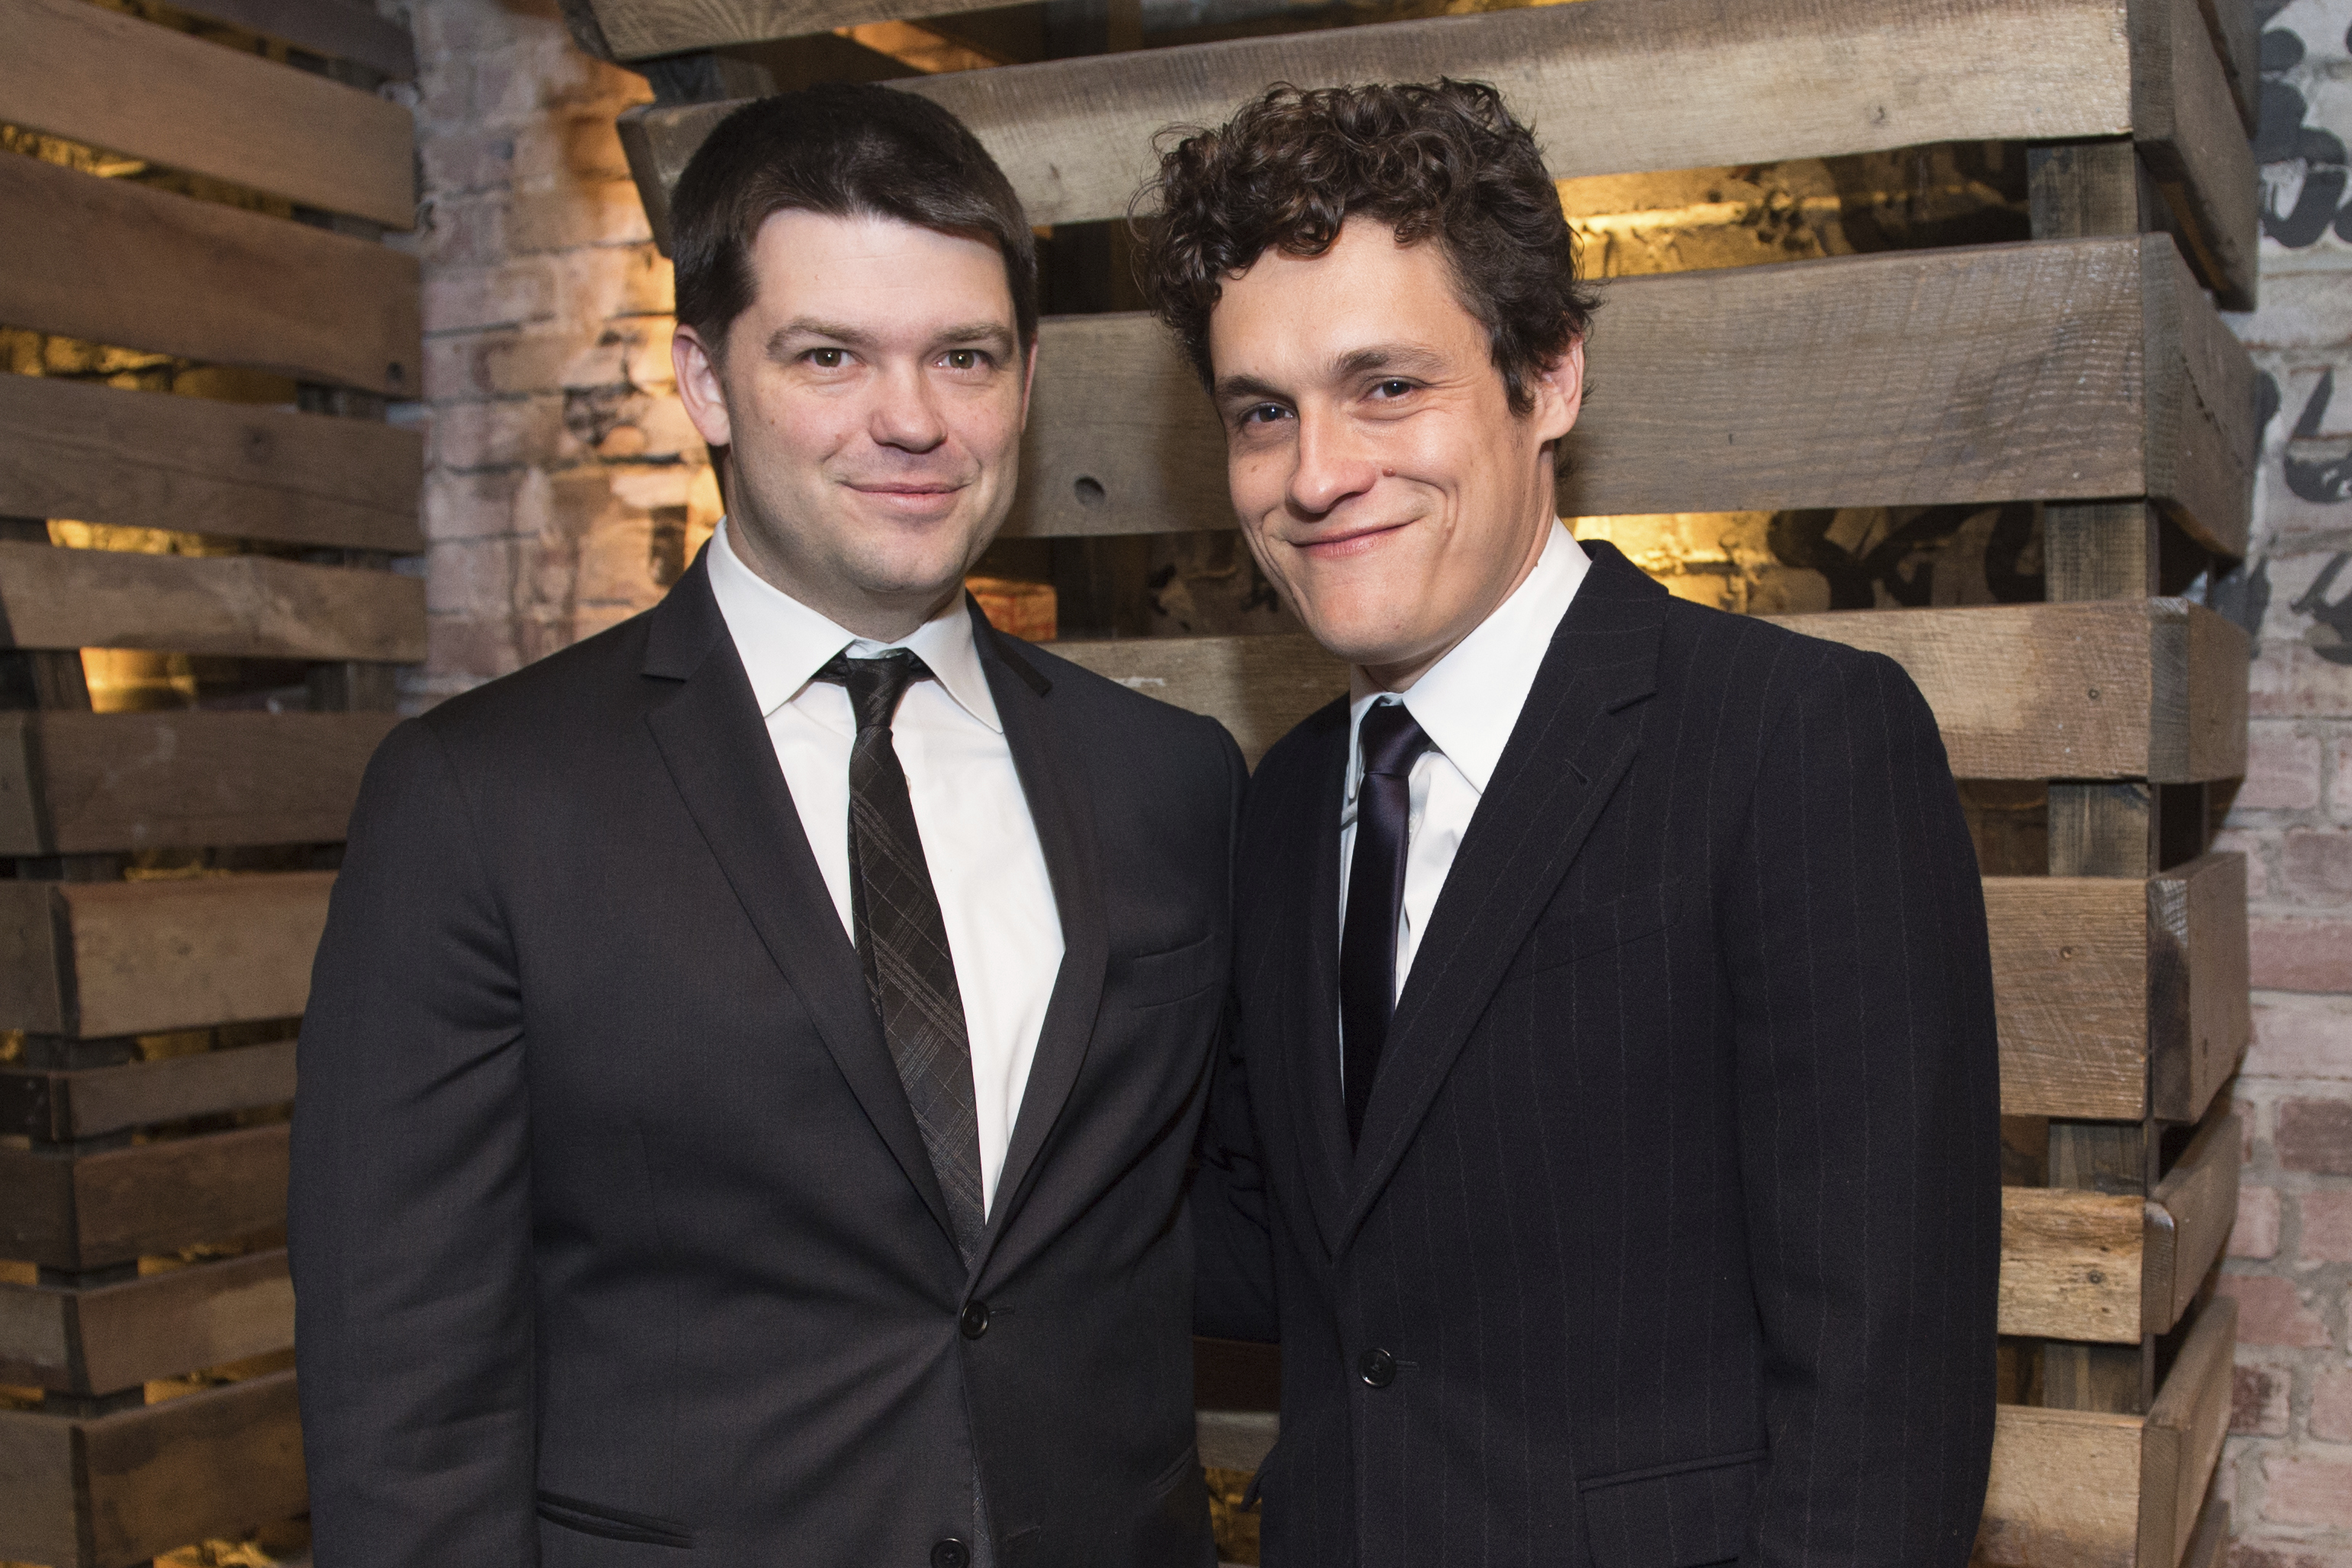 FILE - In this Jan. 5, 2015, file photo, Christopher Miller, left, and Phil Lord pose for a photo at the New York Film Critics Circle Awards at TAO Downtown, in New York. Lucasfilm president Kathleen Kennedy said Tuesday, June 20, 2017, that the Star Wars spinoff is parting ways with directors Phil Lord and Christopher Miller due to different creative visions on the film. Kennedy said a new director would be announced soon. (Photo by Scott Roth/Invision/AP, File)